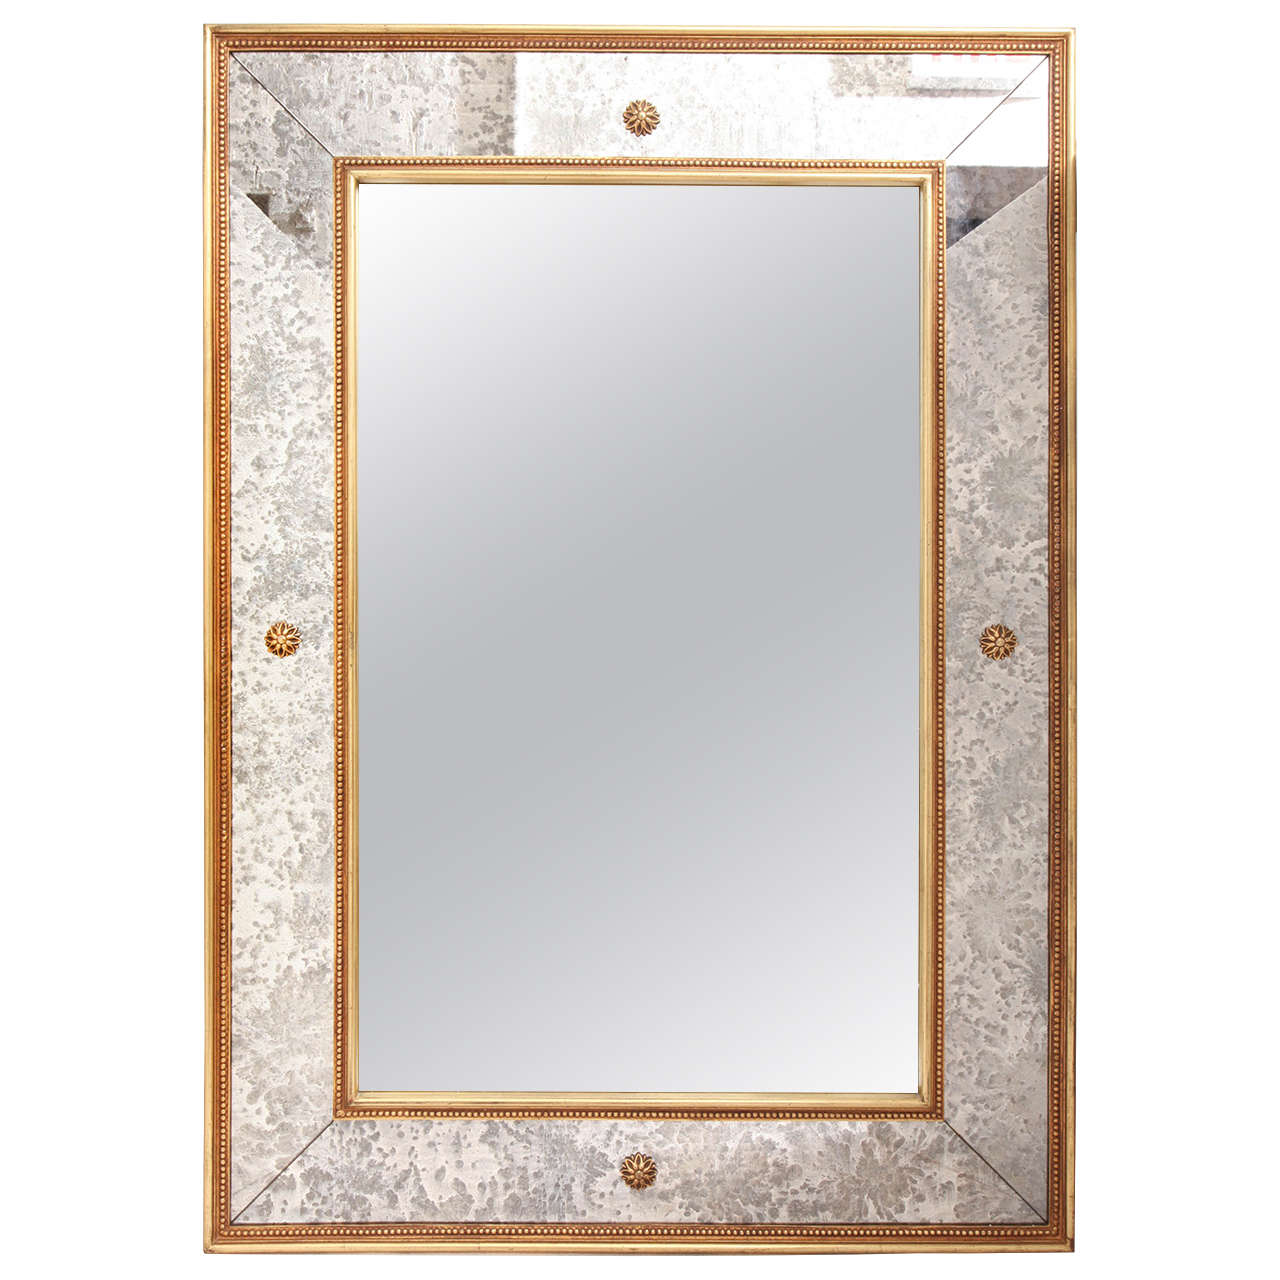 Elegant art deco wall mirror at 1stdibs for Art mirrors for walls